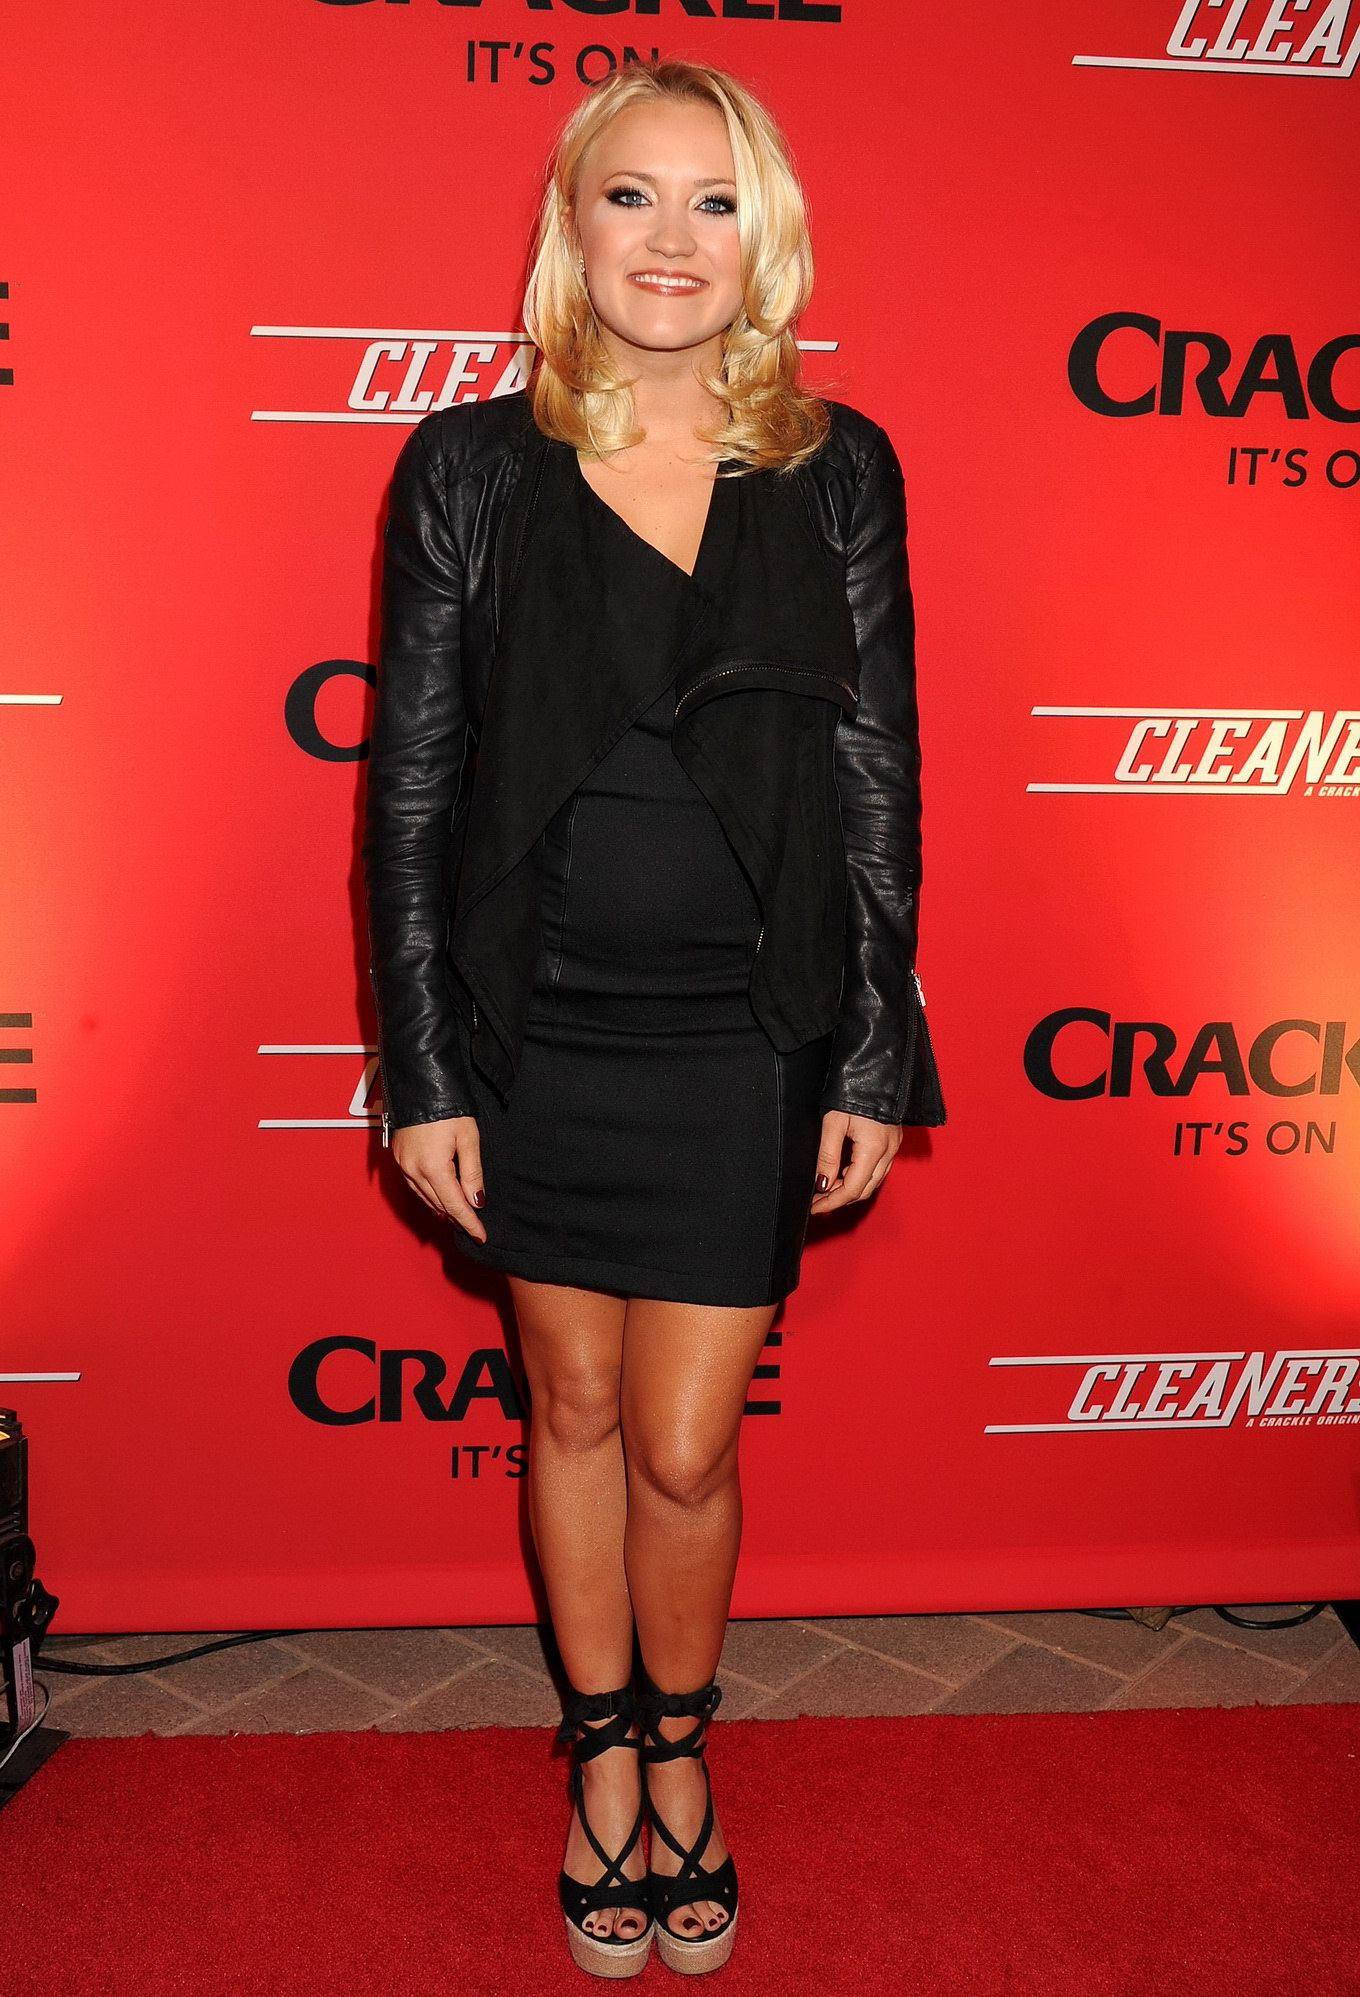 ... wearing black tube mini dress at the Cleaners premiere in Culver City: www.celeb6free.com/pics/celeb1755/emily_osment_site_tgpdevilorg.html